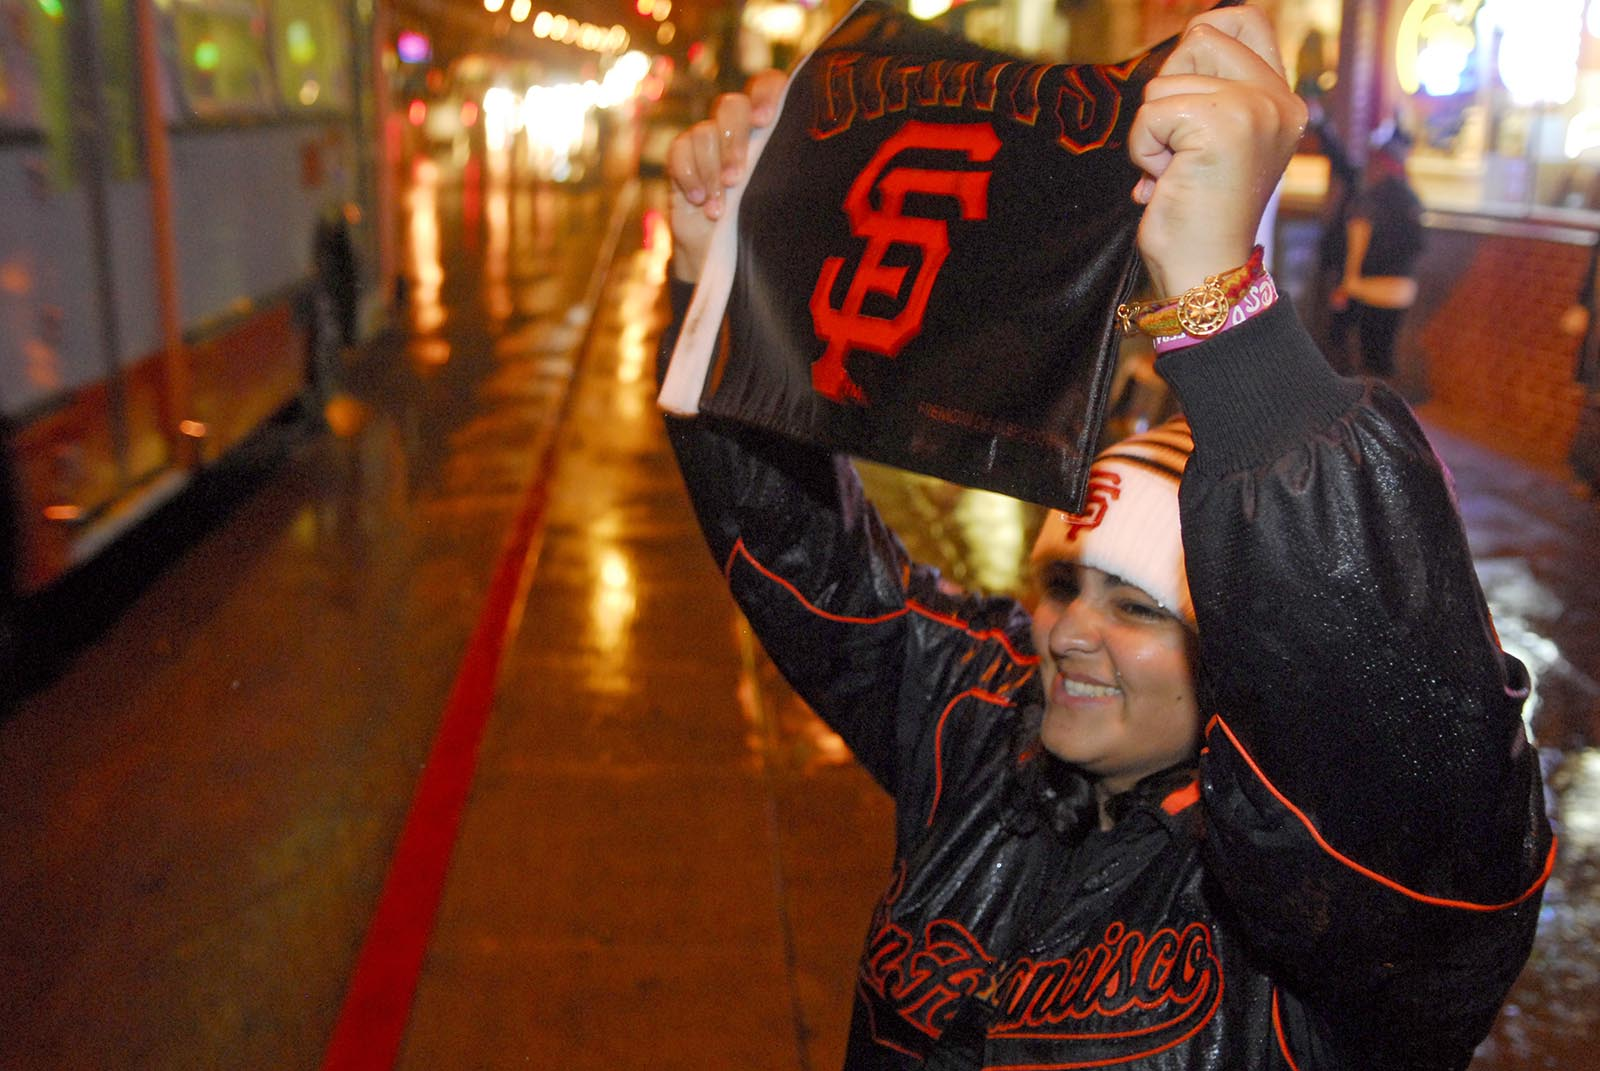 Giants Lead Tigers 2-0 in World Series